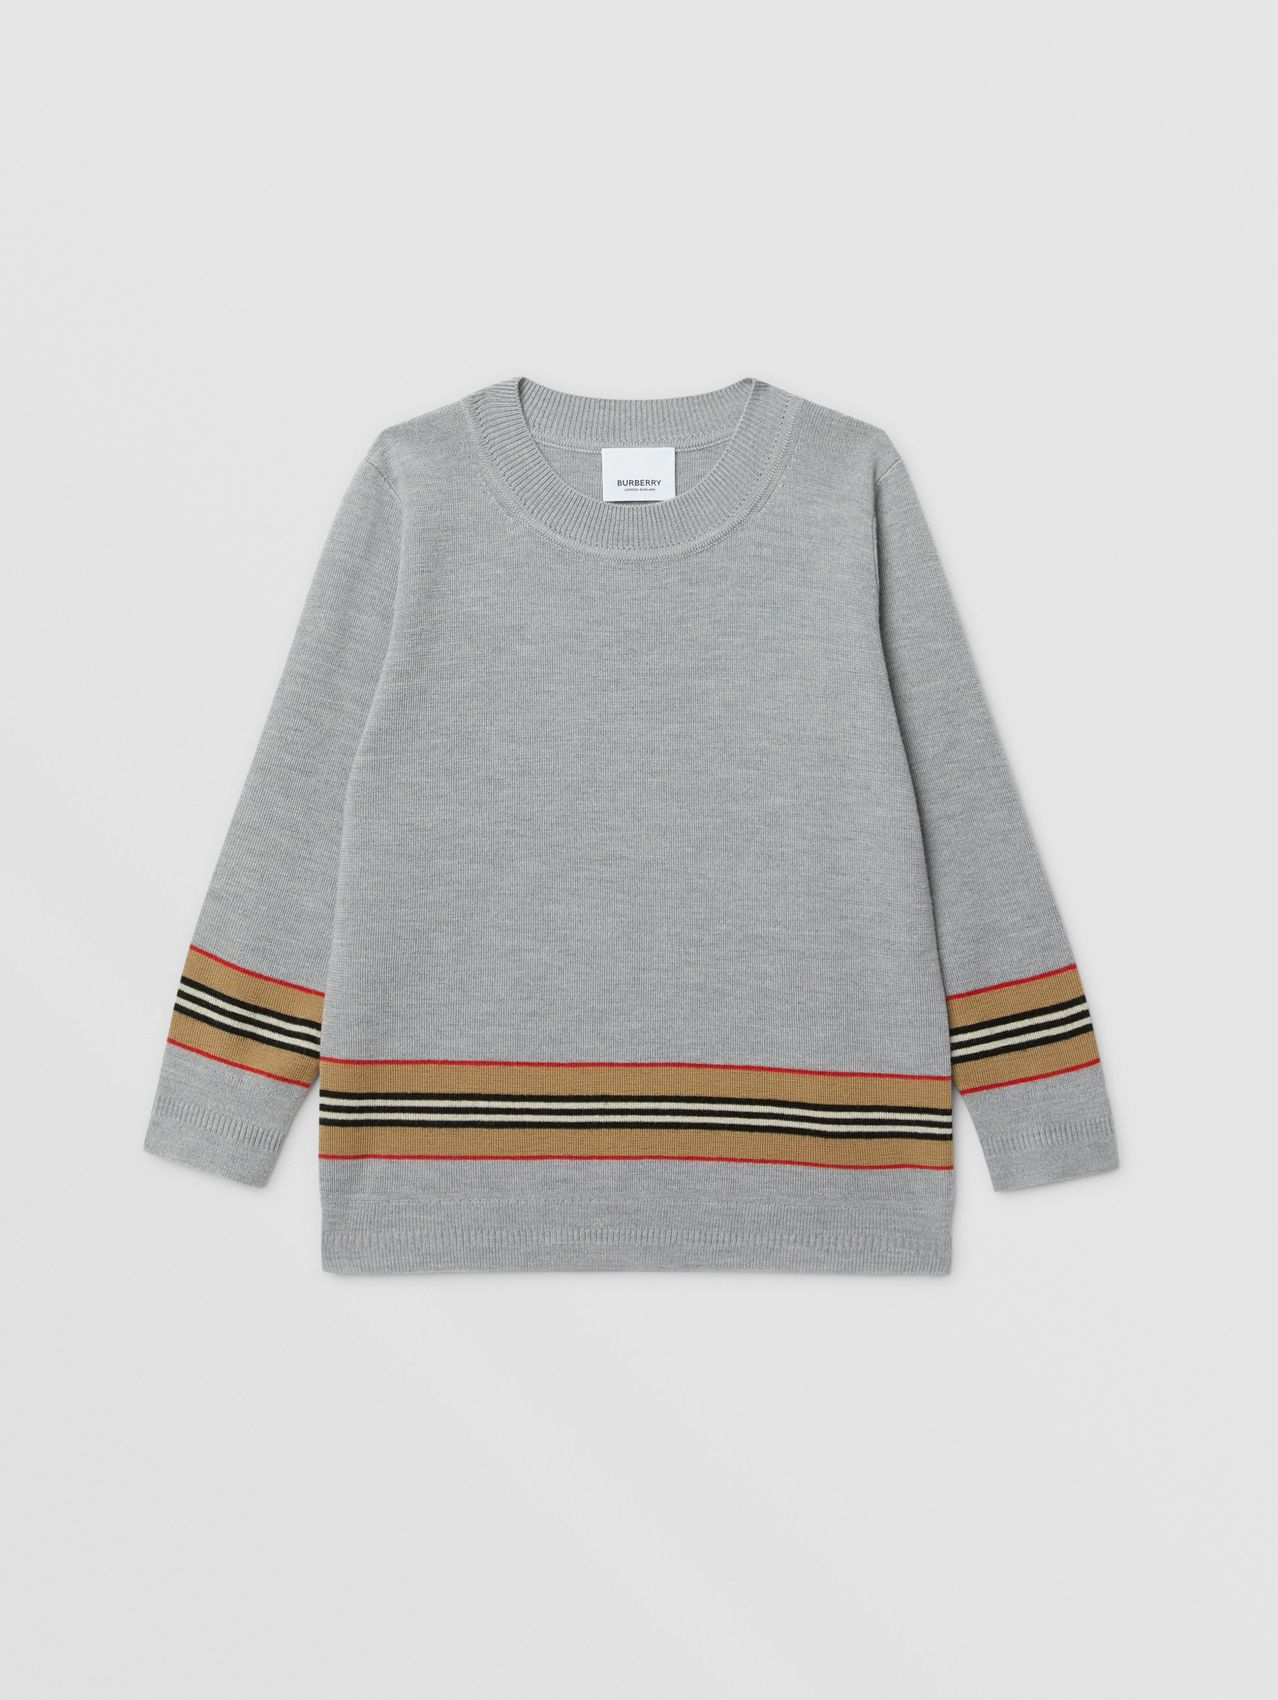 Icon Stripe Panel Wool Sweater in Grey Melange